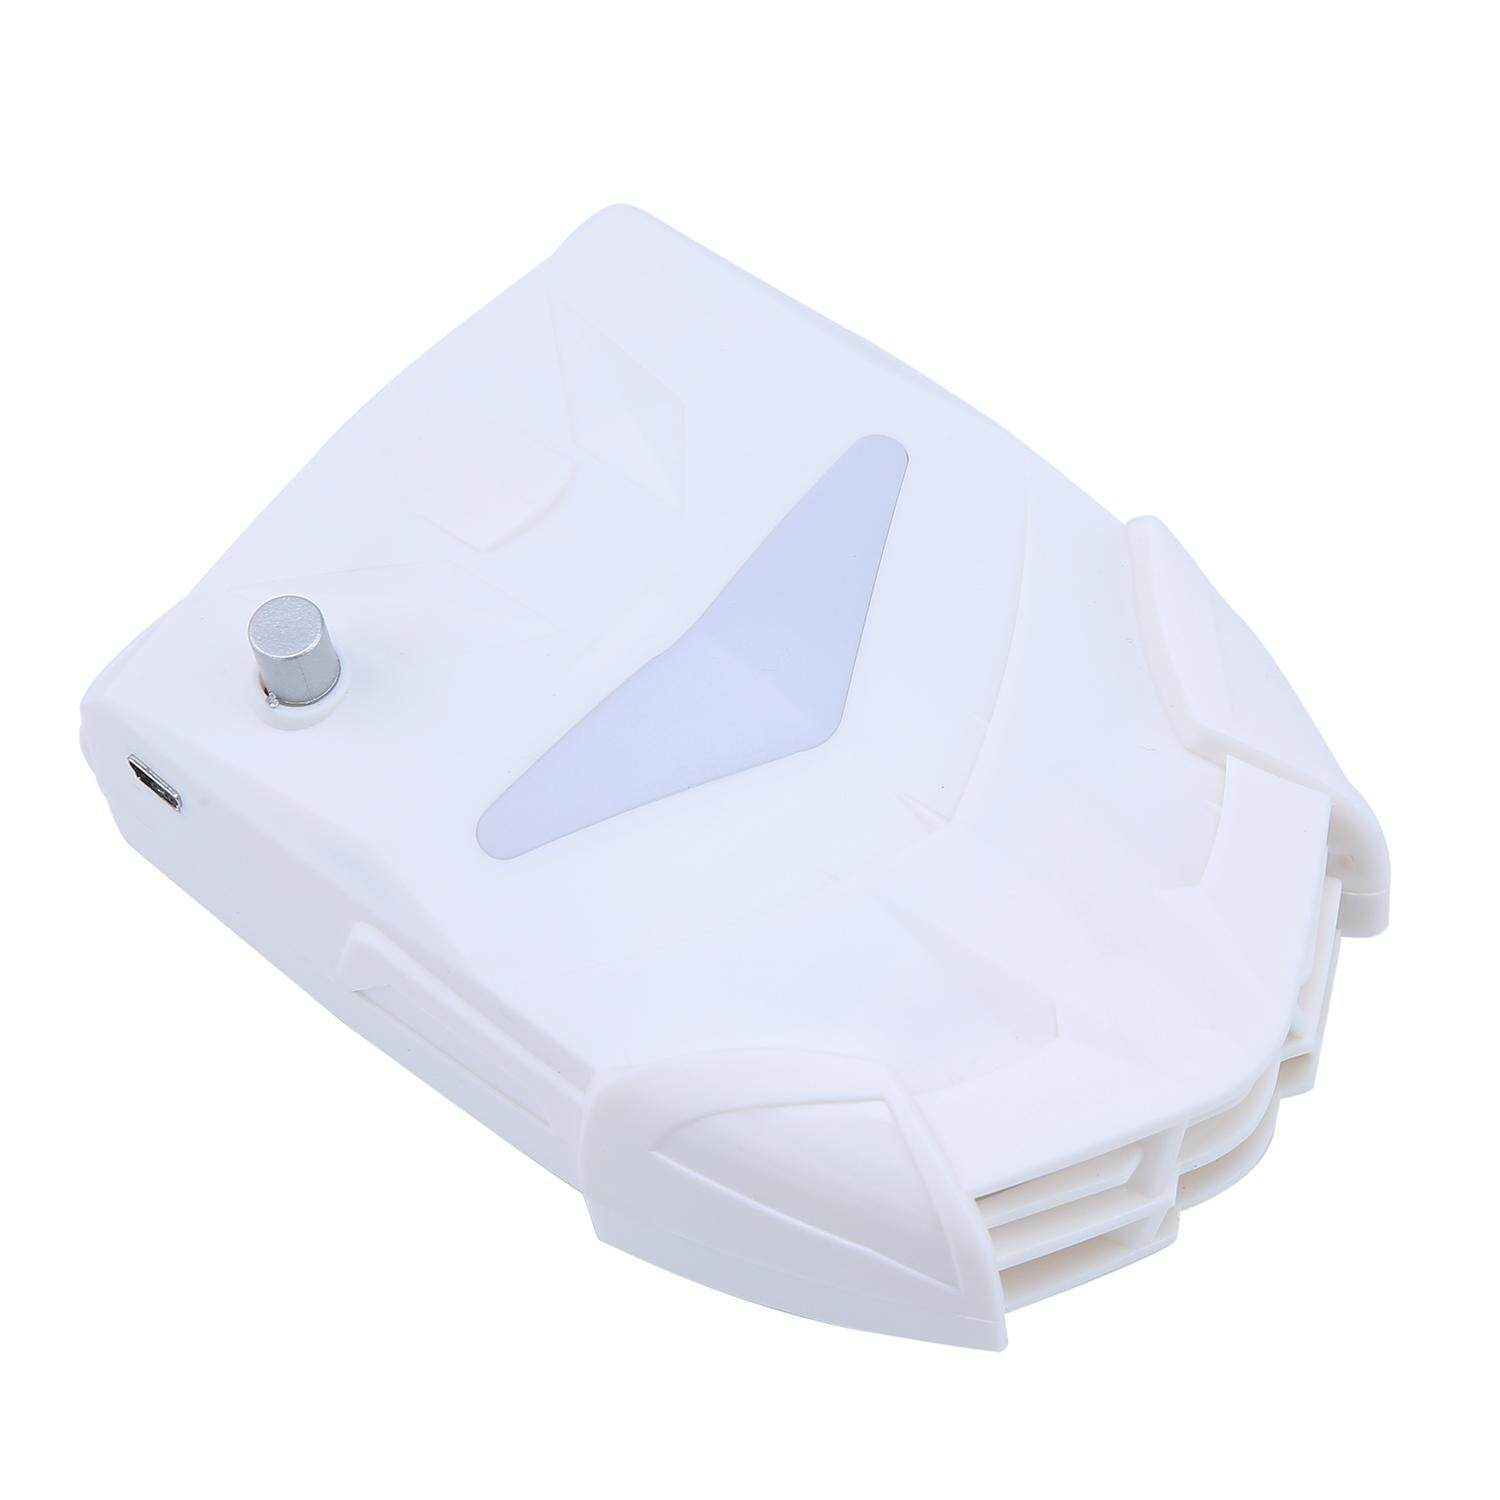 foorvof Laptop Cooler with Vacuum Fan, Laptop Air Extracting Cooling Fan (White) - intl